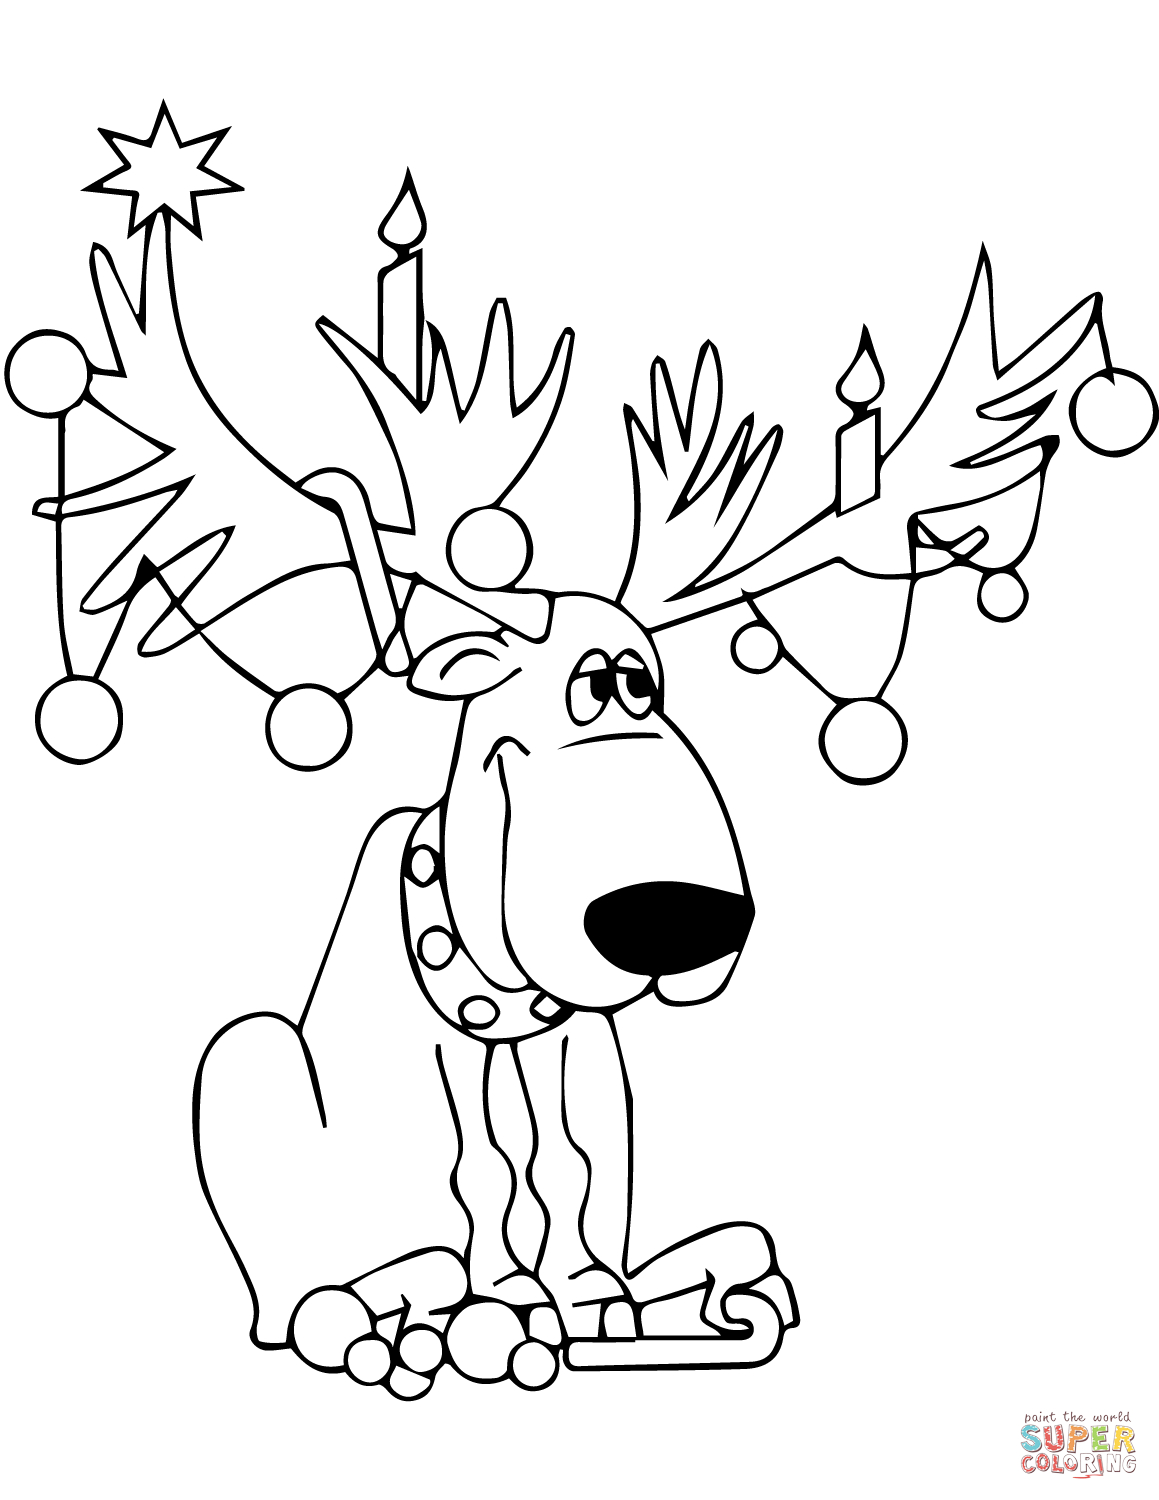 Christmas Lights Color Pages Christmas Lights On Reindeer Antlers Coloring Page Free Printable